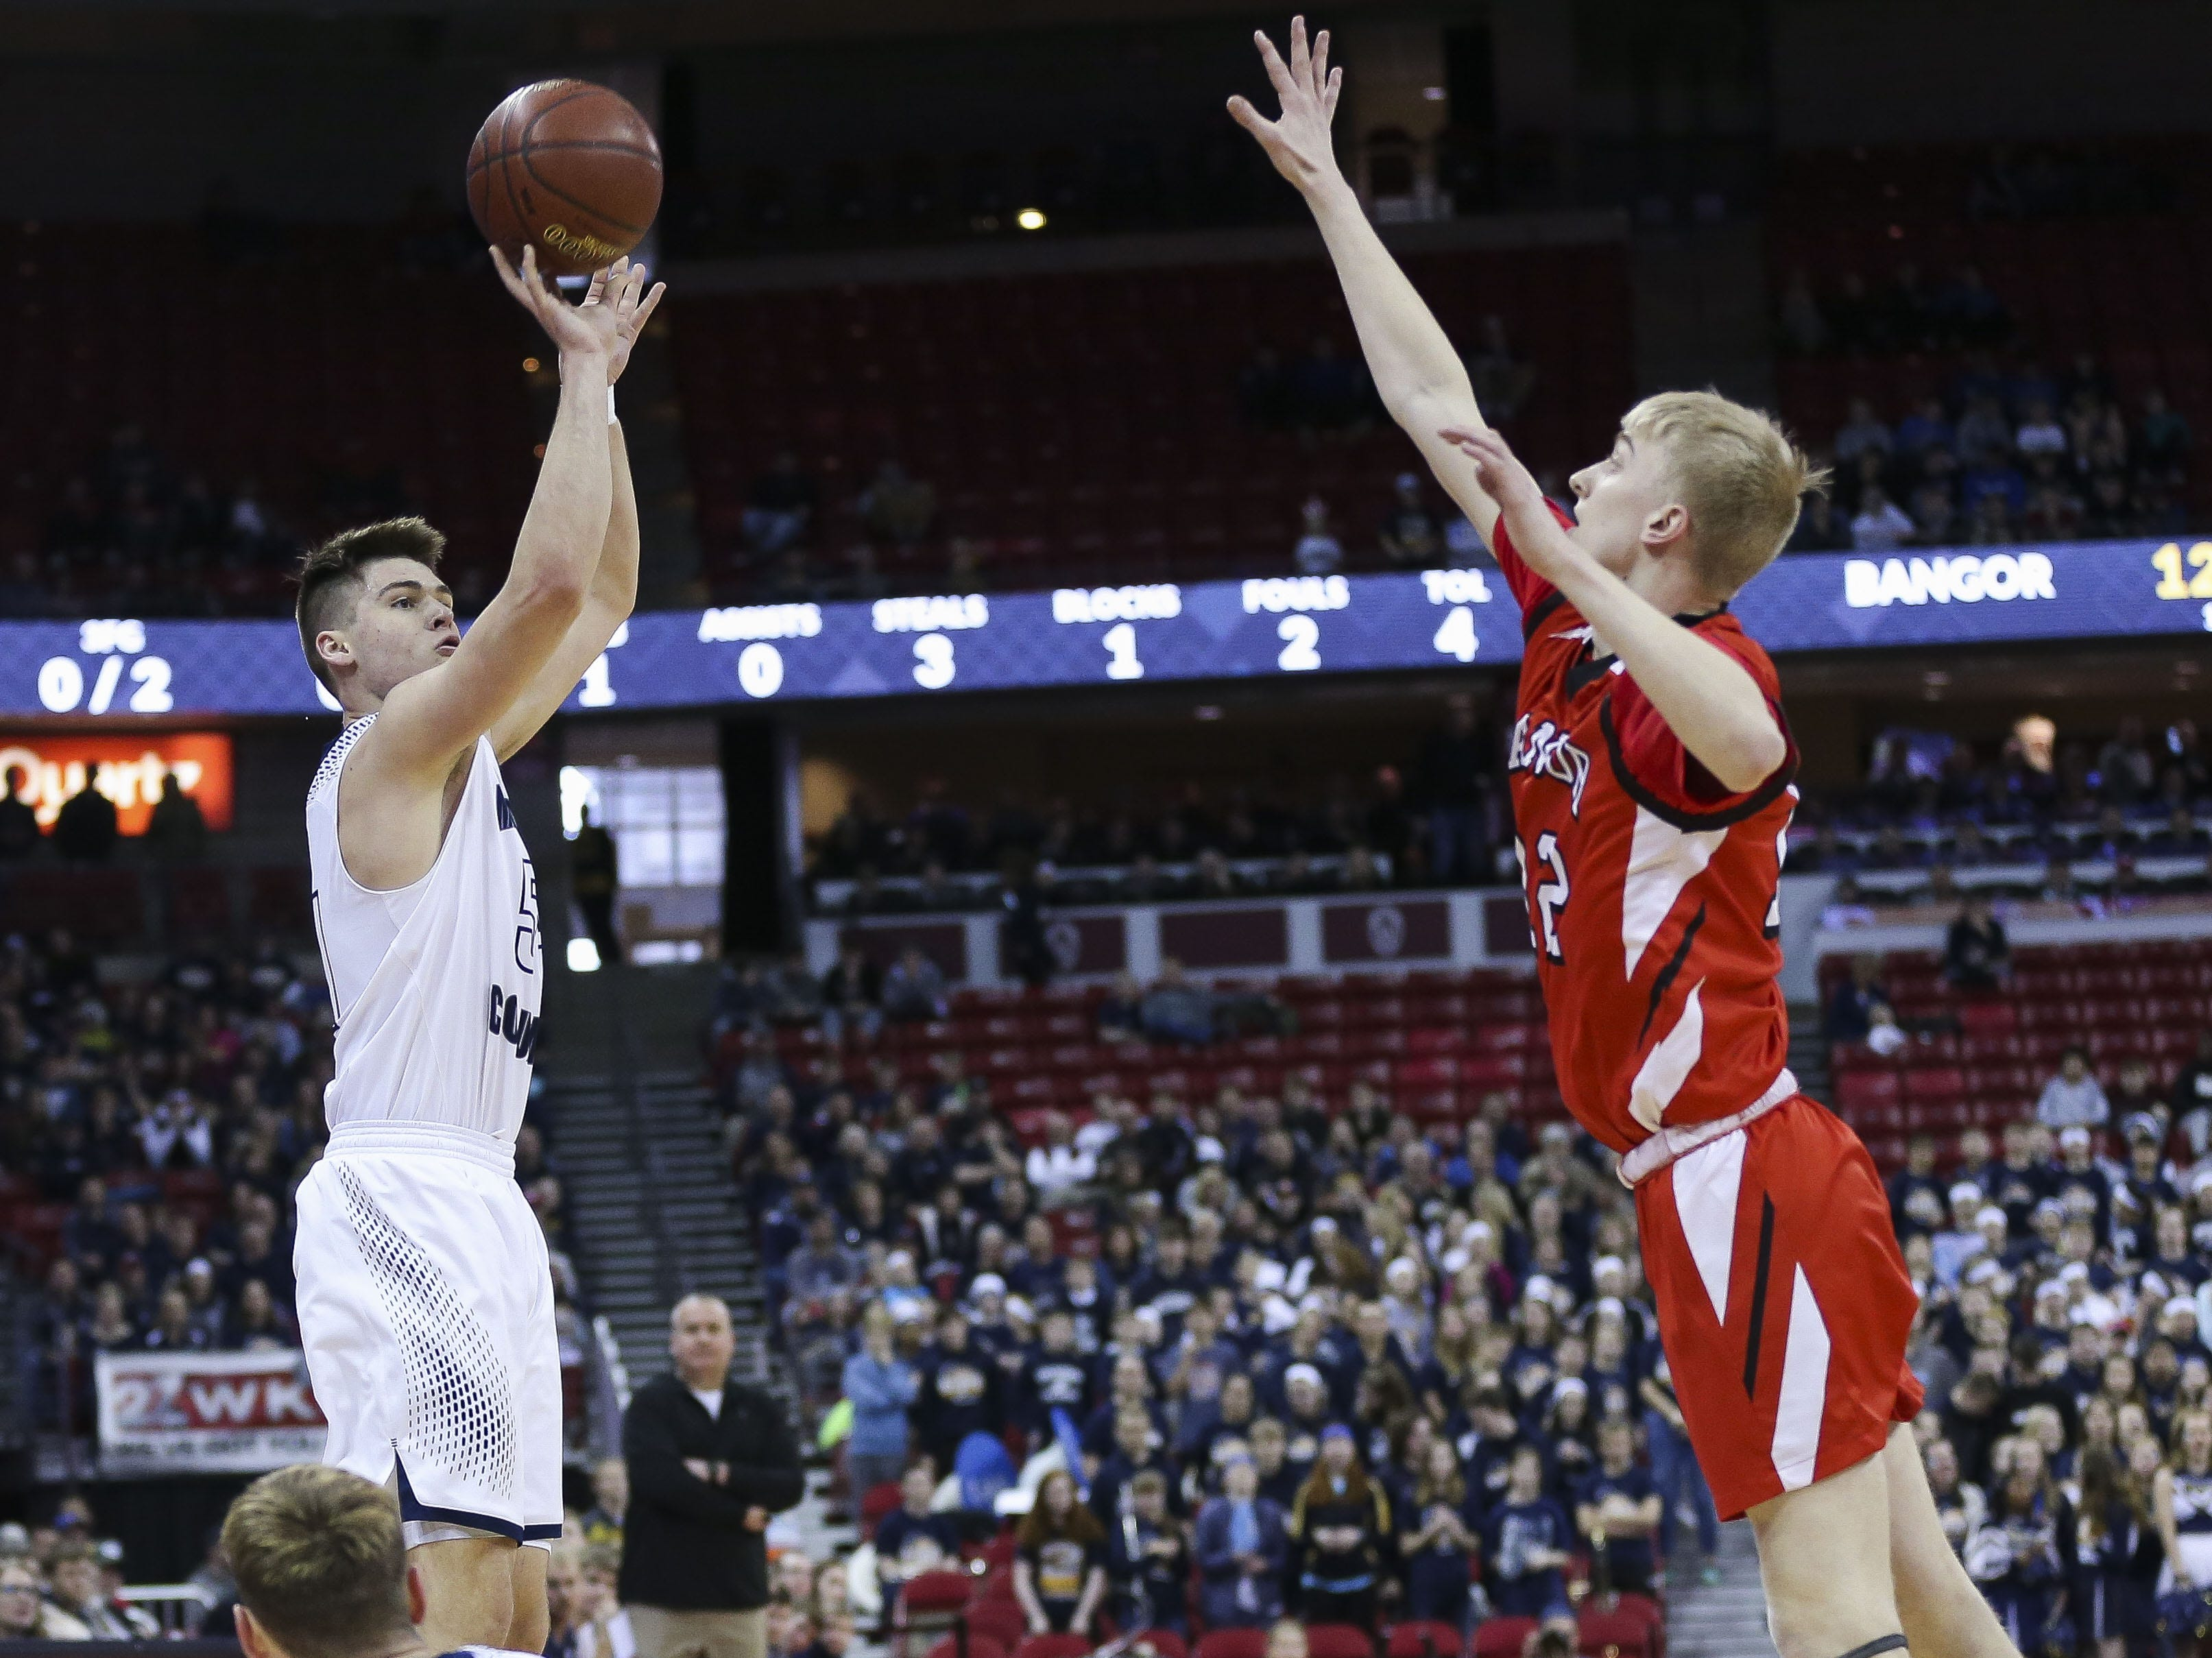 Columbus Catholic High School's Jarred Mandel (54) shoots a 3-pointer against Bangor High School in a Division 5 boys basketball state semifinal on Friday, March 15, 2019, at the Kohl Center in Madison, Wis. Columbus Catholic won the game, 69-66, on a buzzer-beater 3-pointer. Tork Mason/USA TODAY NETWORK-Wisconsin